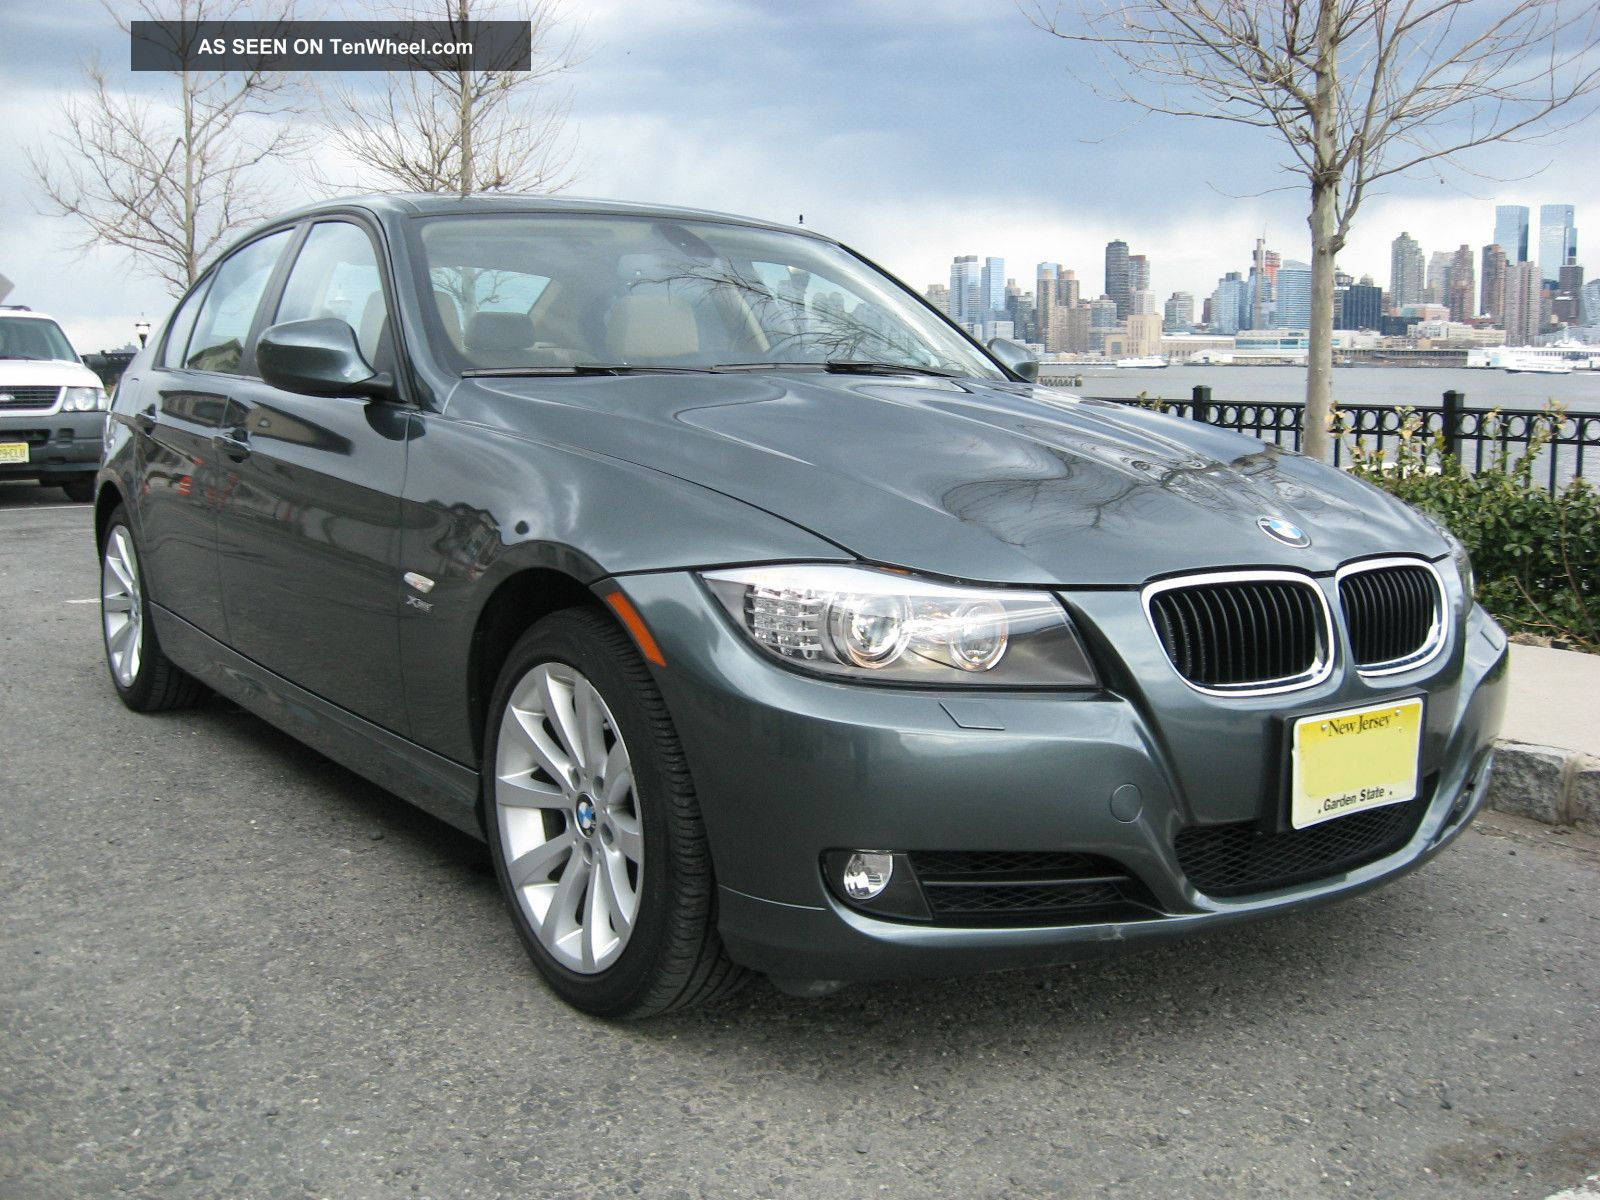 2011 Bmw 328i Xdrive Review Autos Weblog